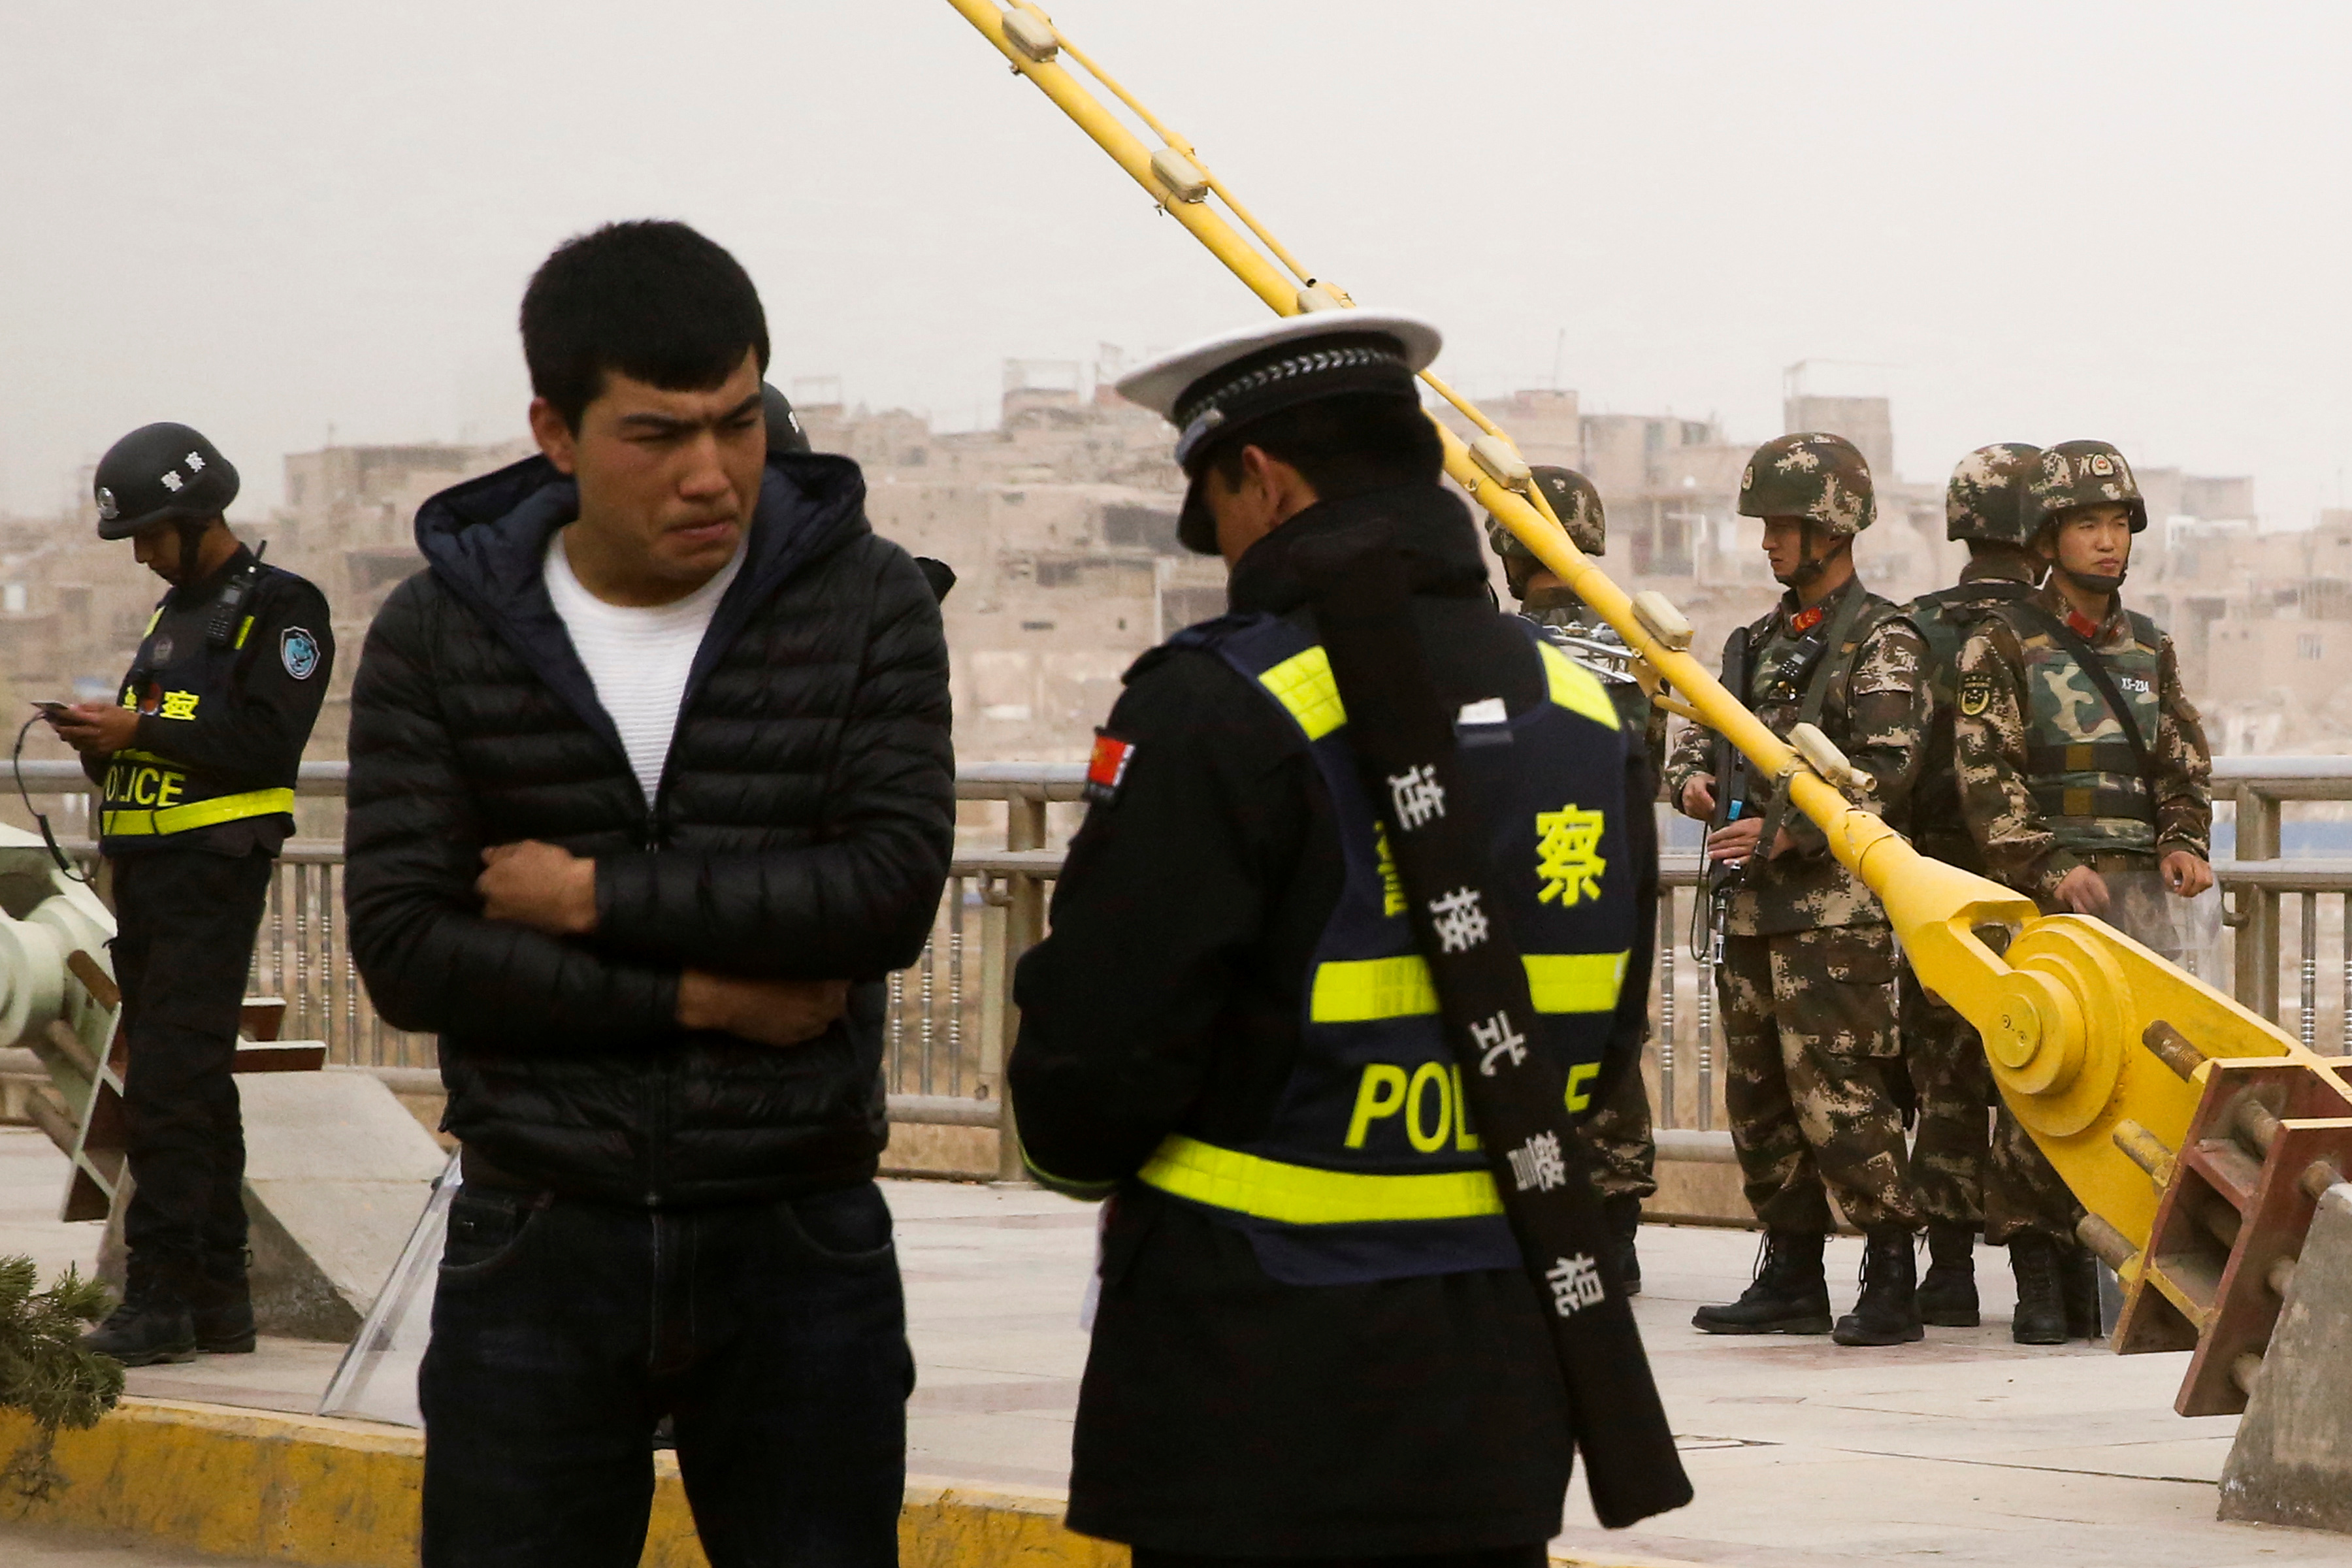 FILE - A police officer checks the identity card of a man as security forces keep watch in a street in Kashgar, Xinjiang Uighur Autonomous Region, China, March 24, 2017.